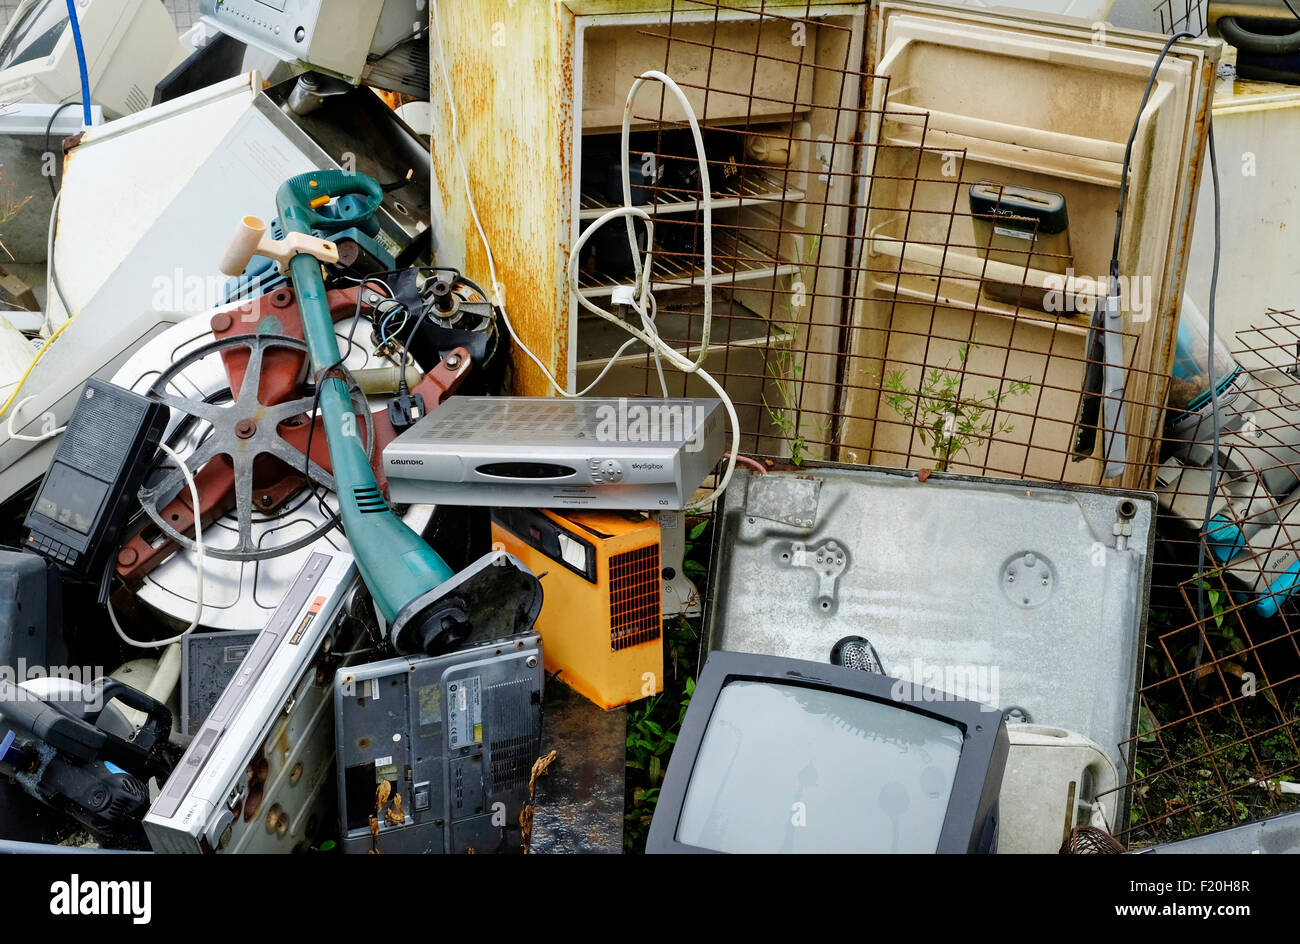 pile of discarded electrical junk - Stock Image